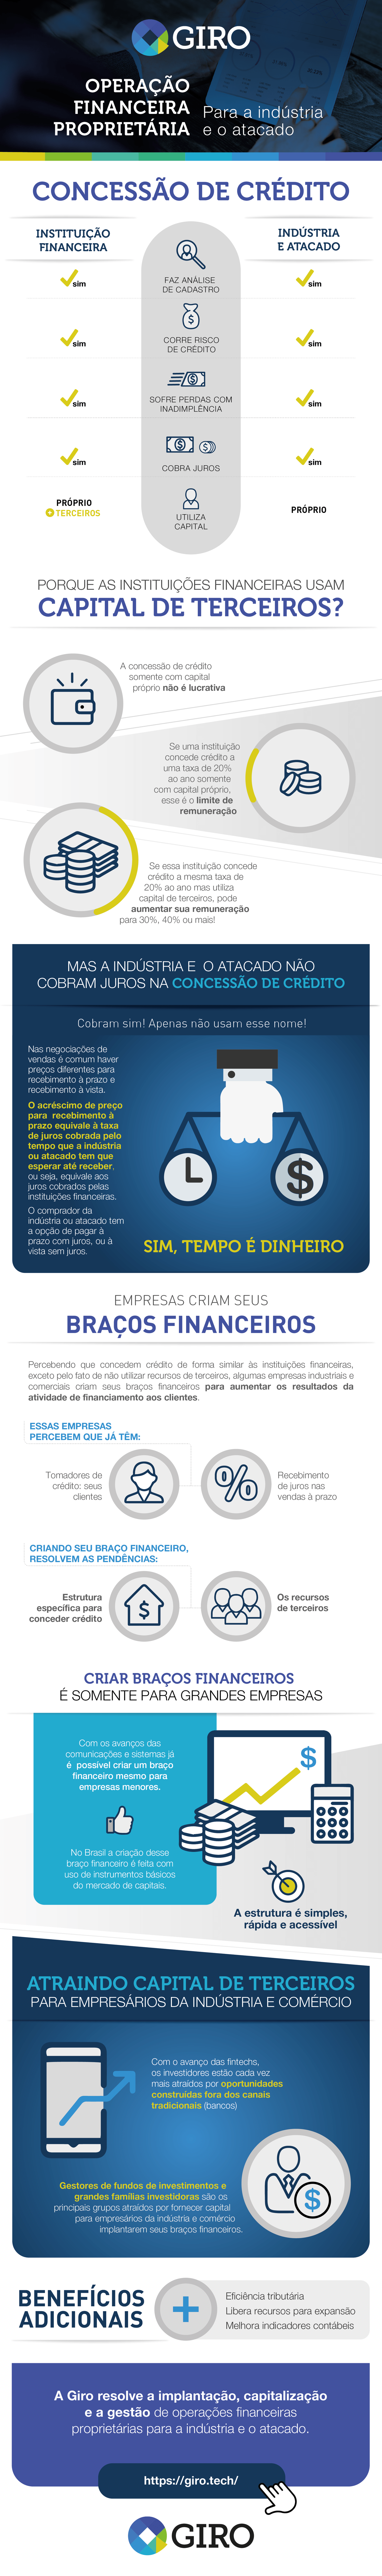 Confinanciamento de Vendas